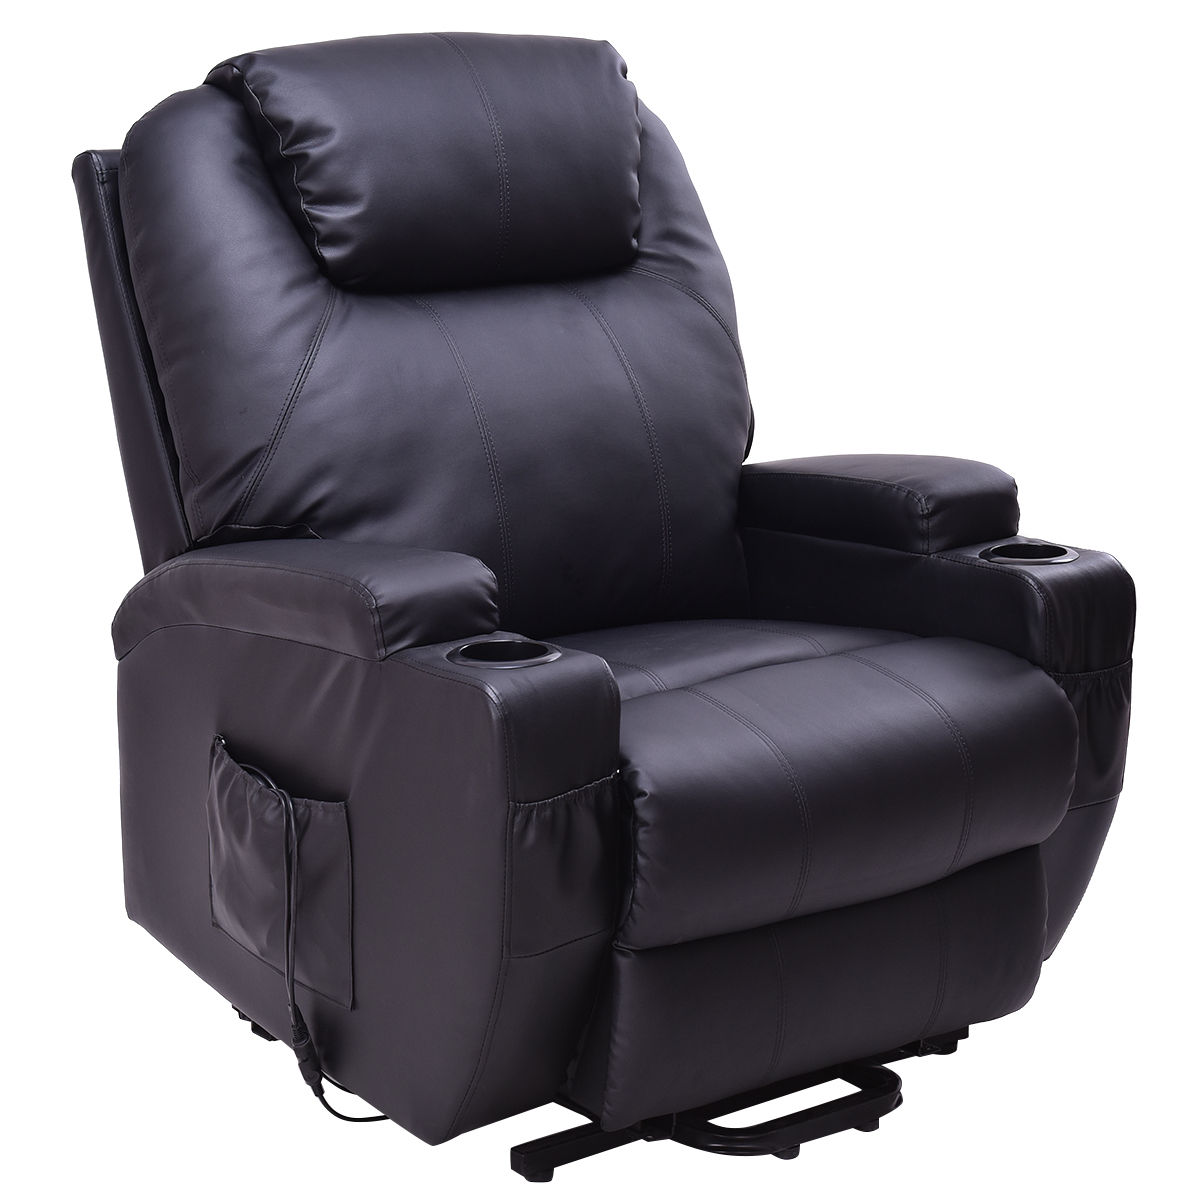 Narrow Recliners Sale Amp Bloomingdaleu0027s Victor Recliner